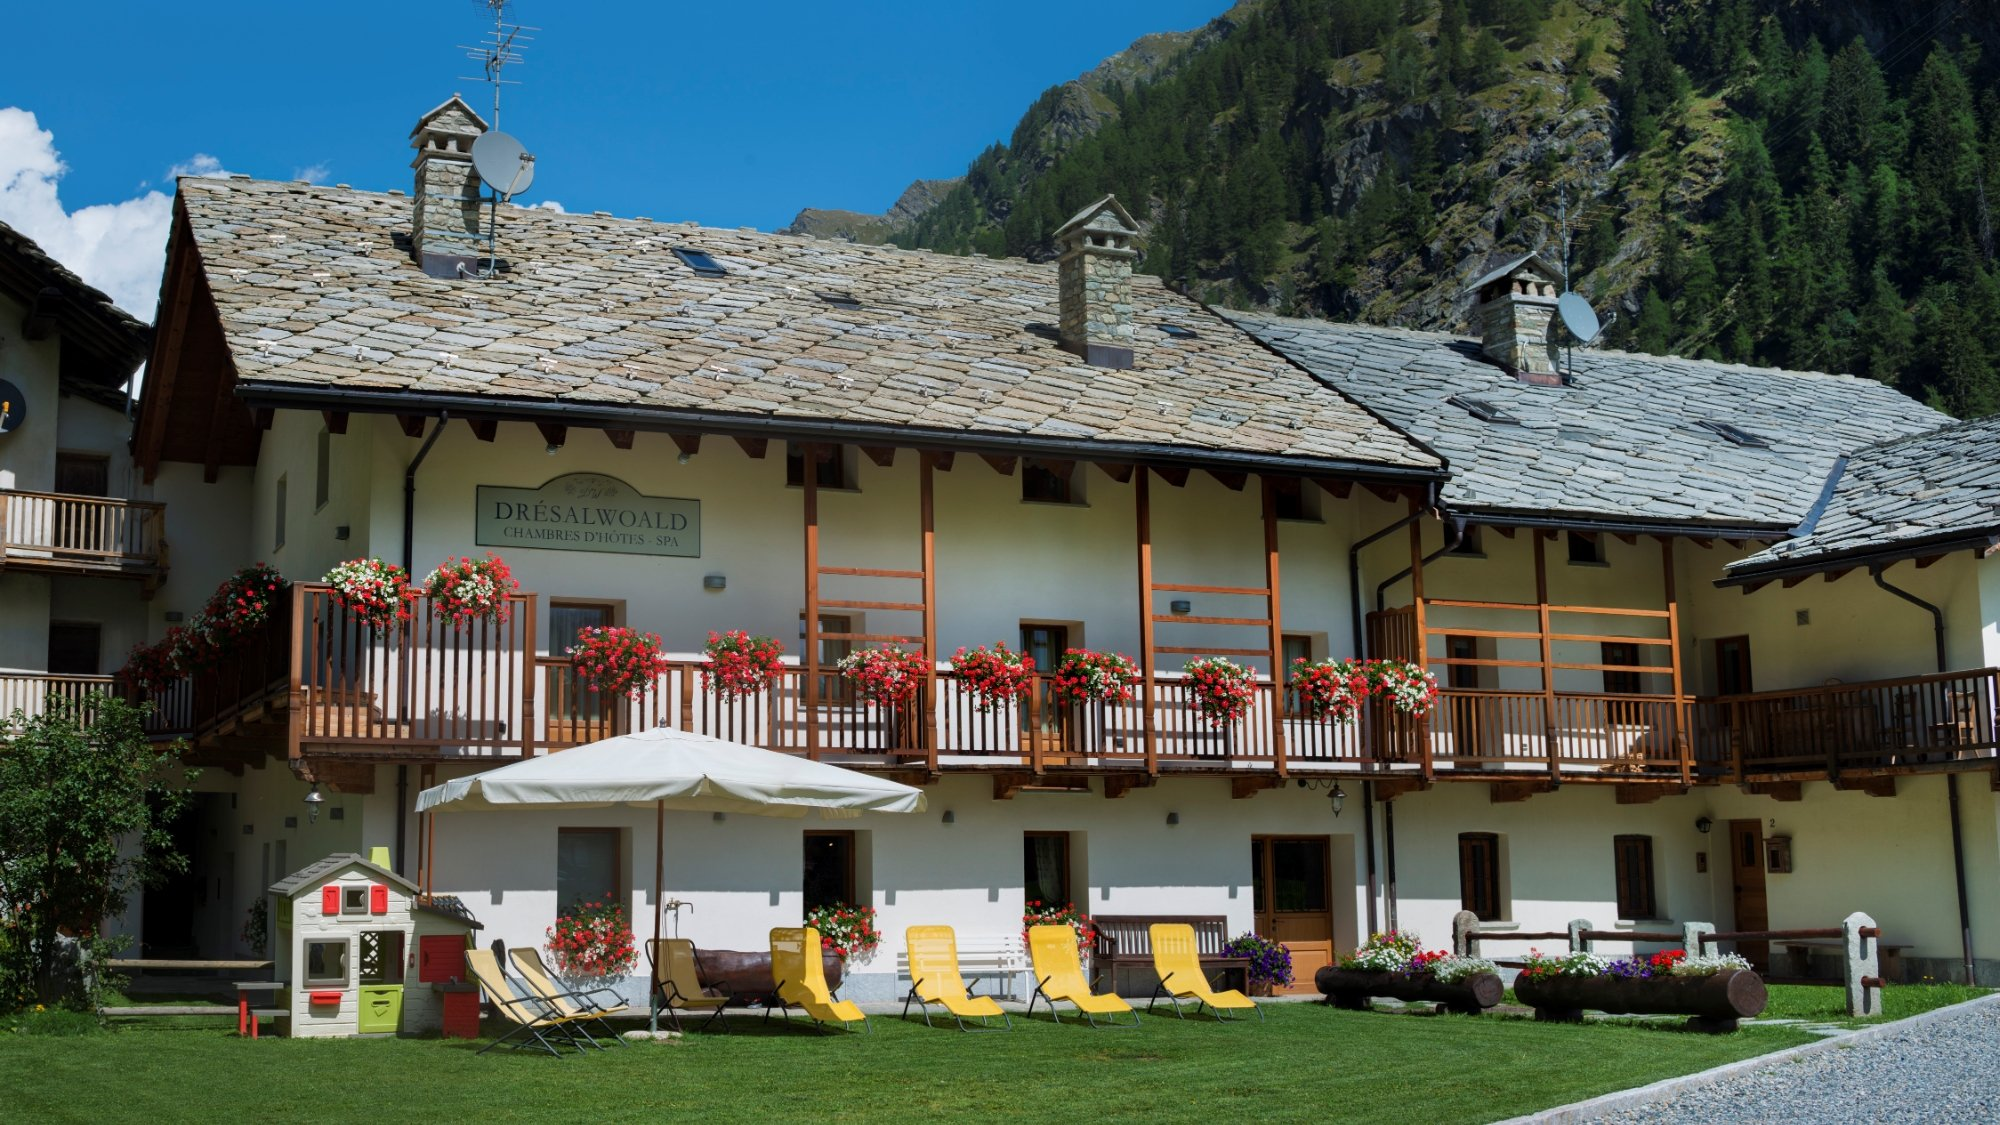 Chambres d Hotes Dresalwoald Prices & Hotel Reviews Gressoney